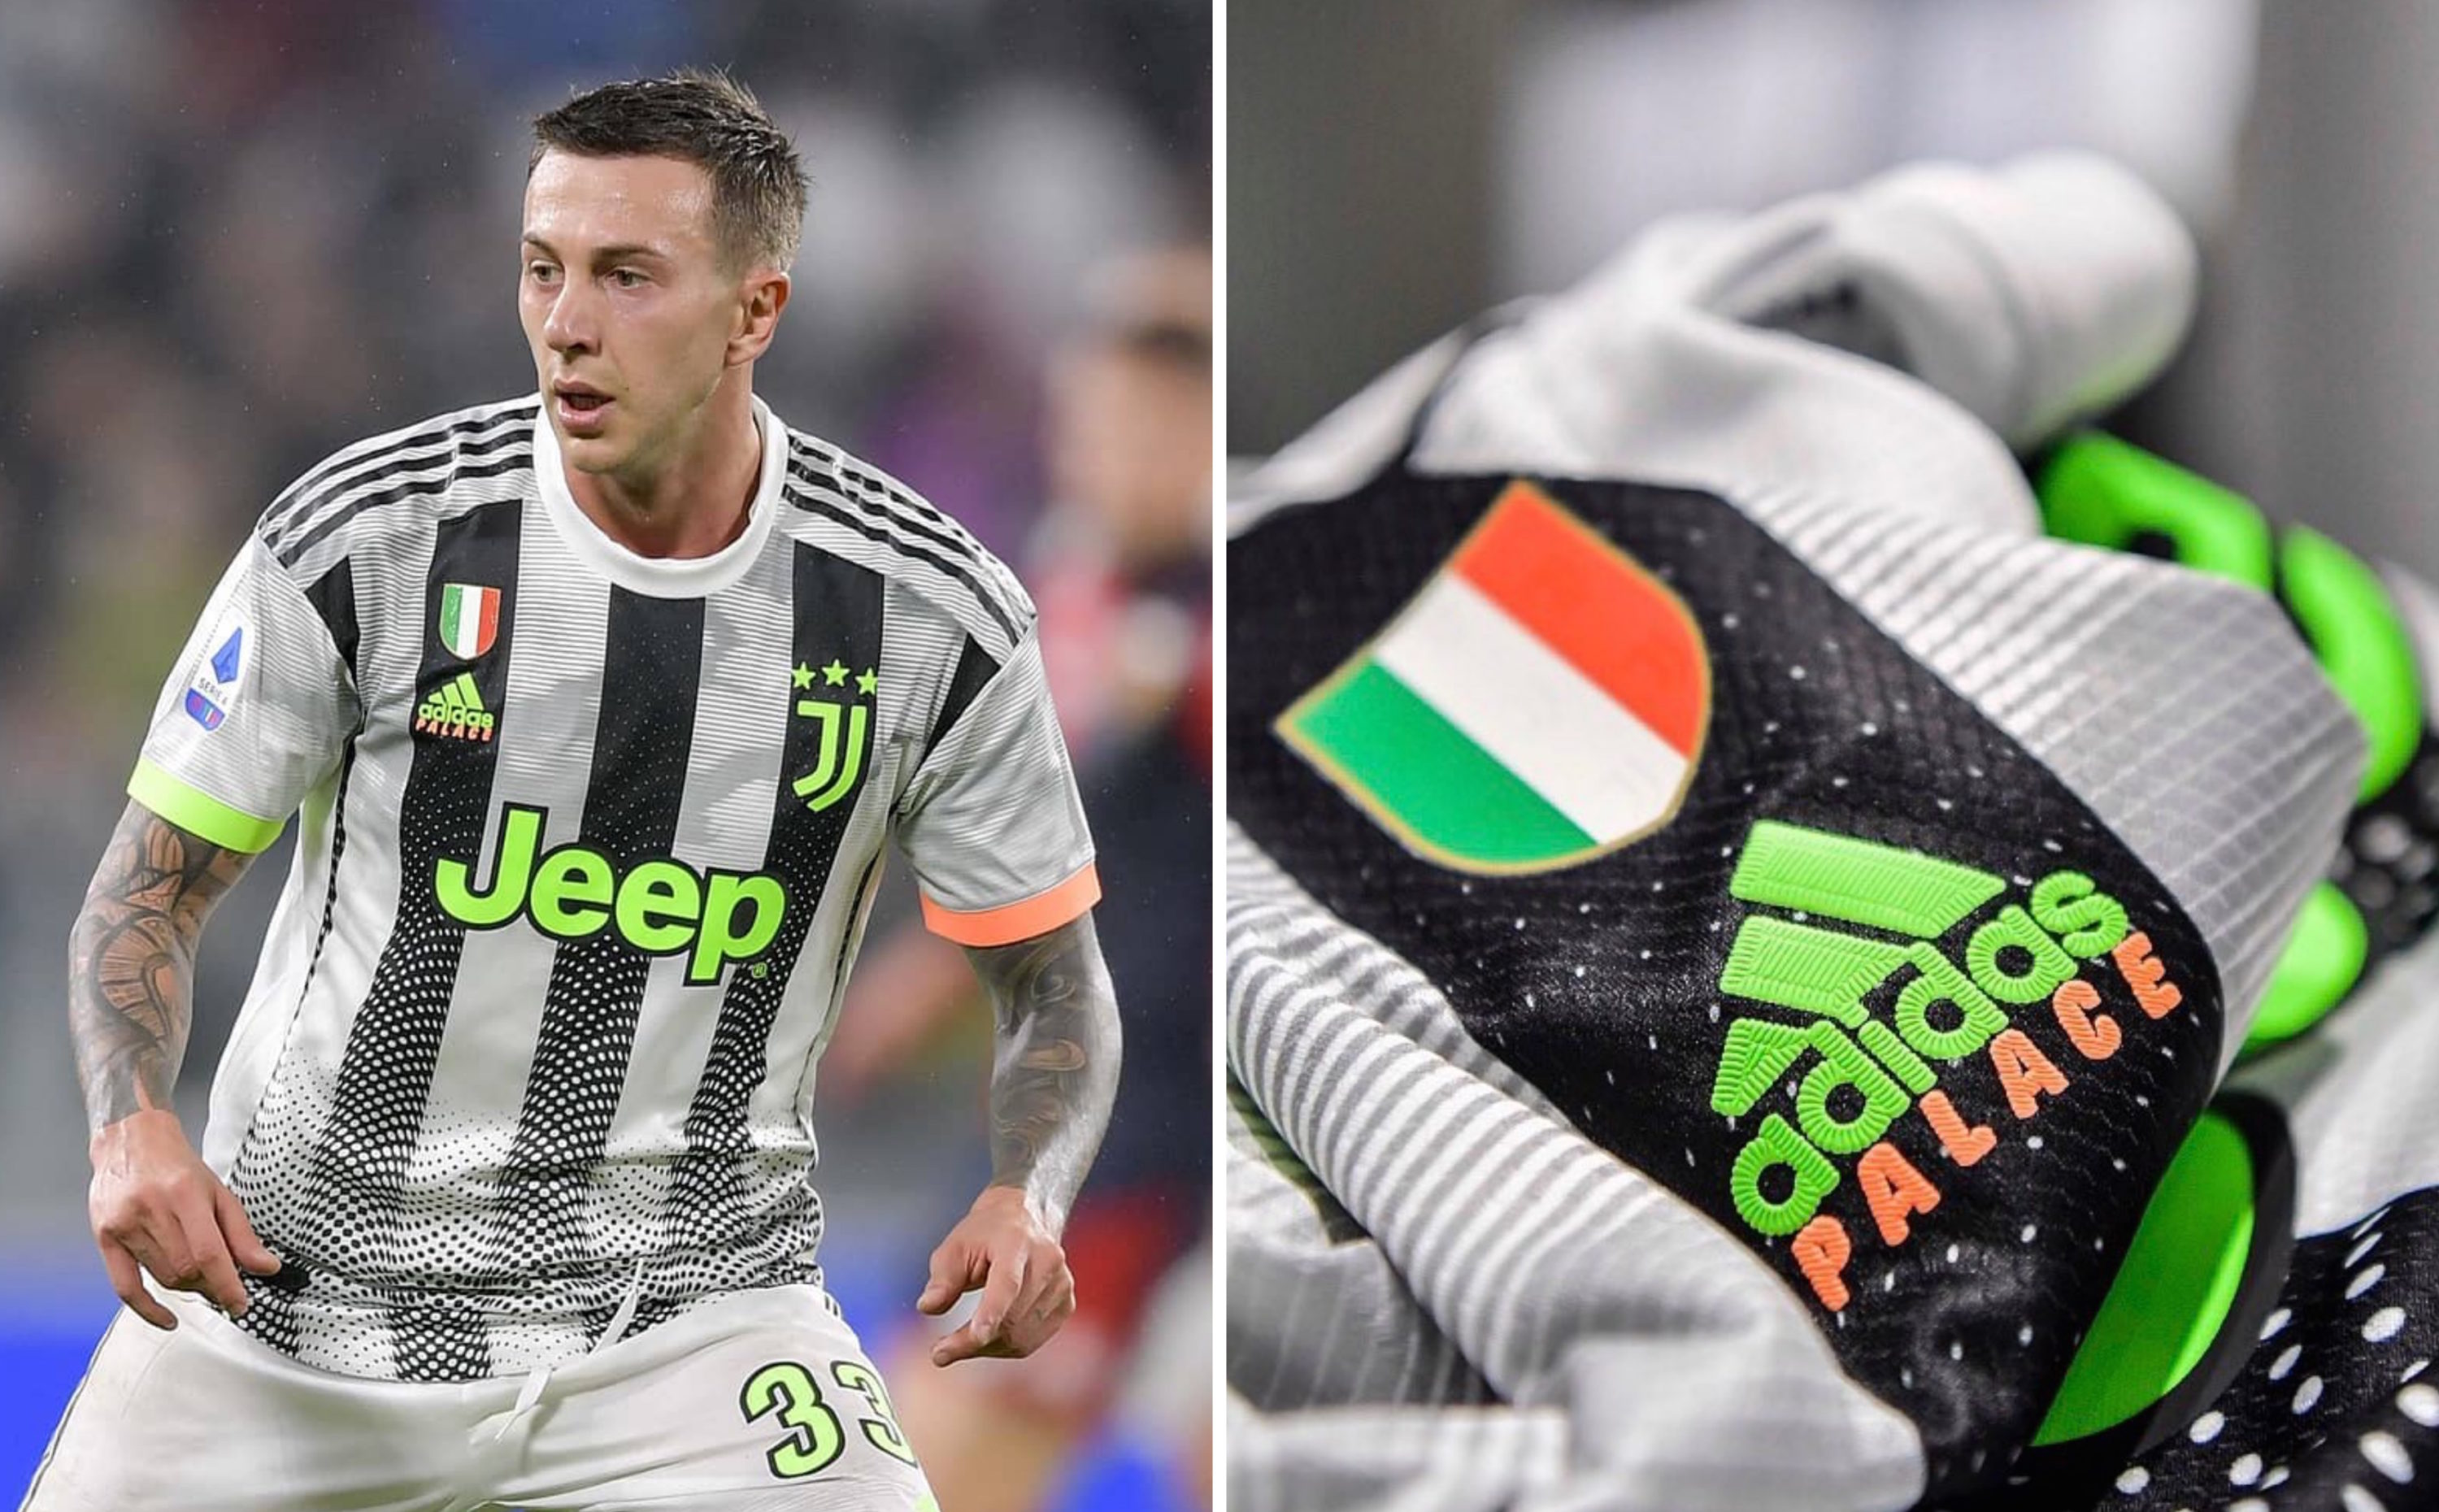 Juventus Finally Debuted Its Game Changing Collaboration With Palace And Adidas Last Night